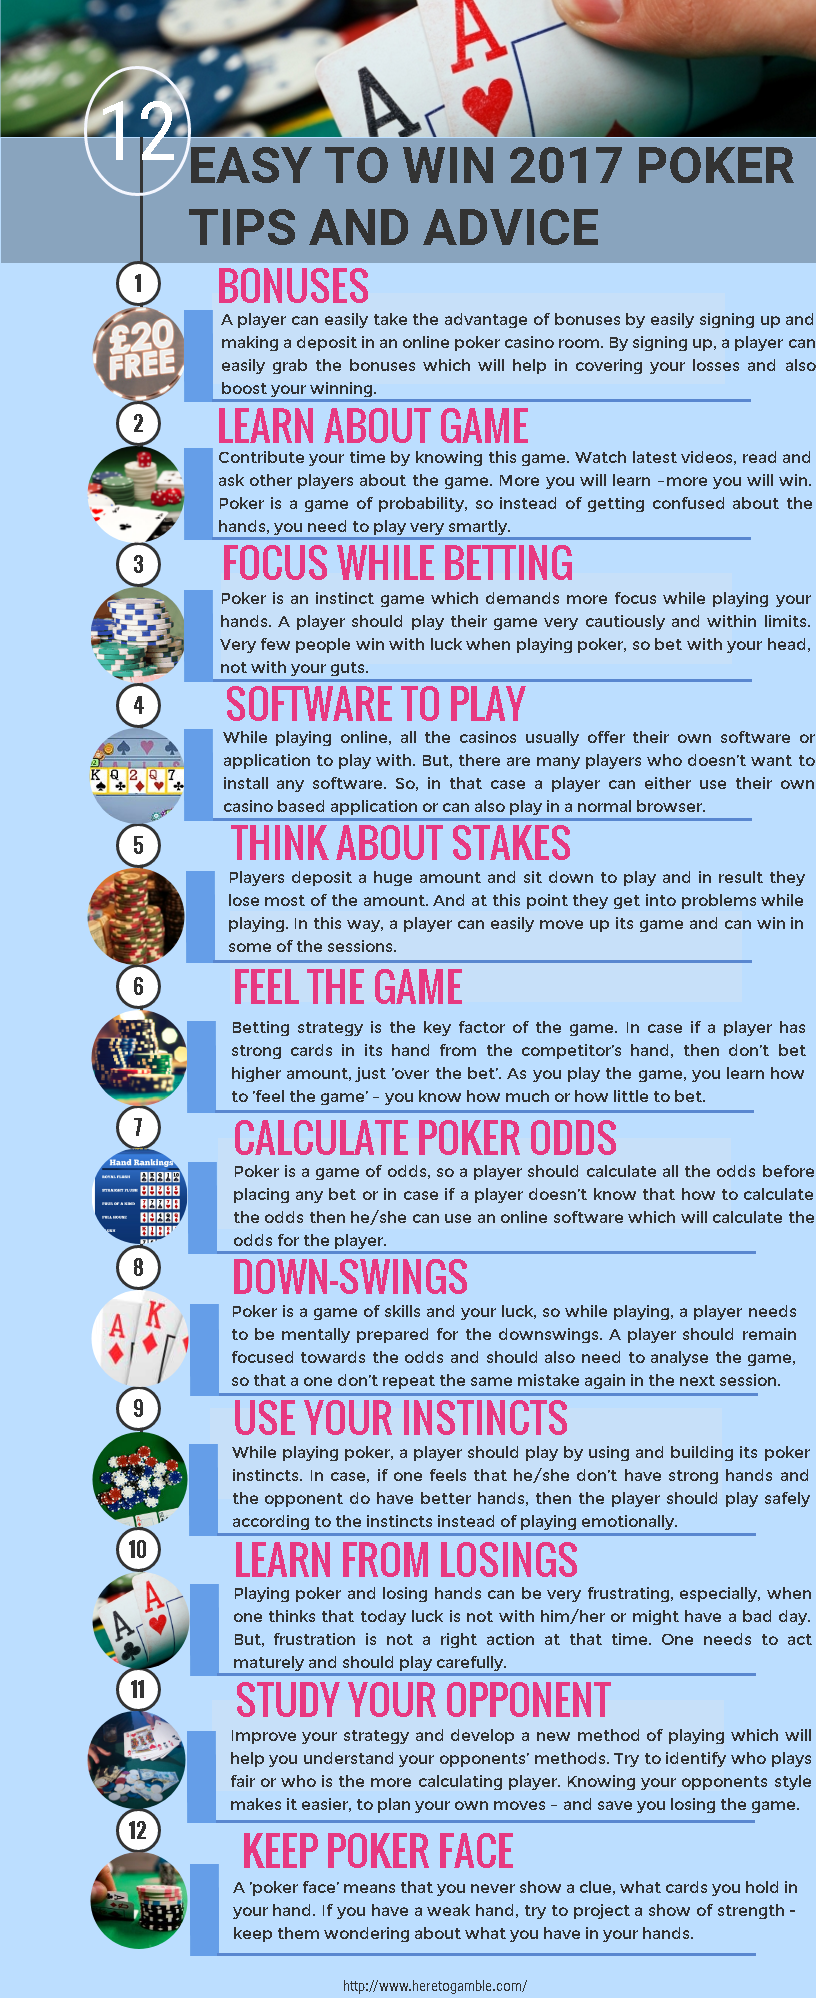 Casino gaming advice online casino laws usa